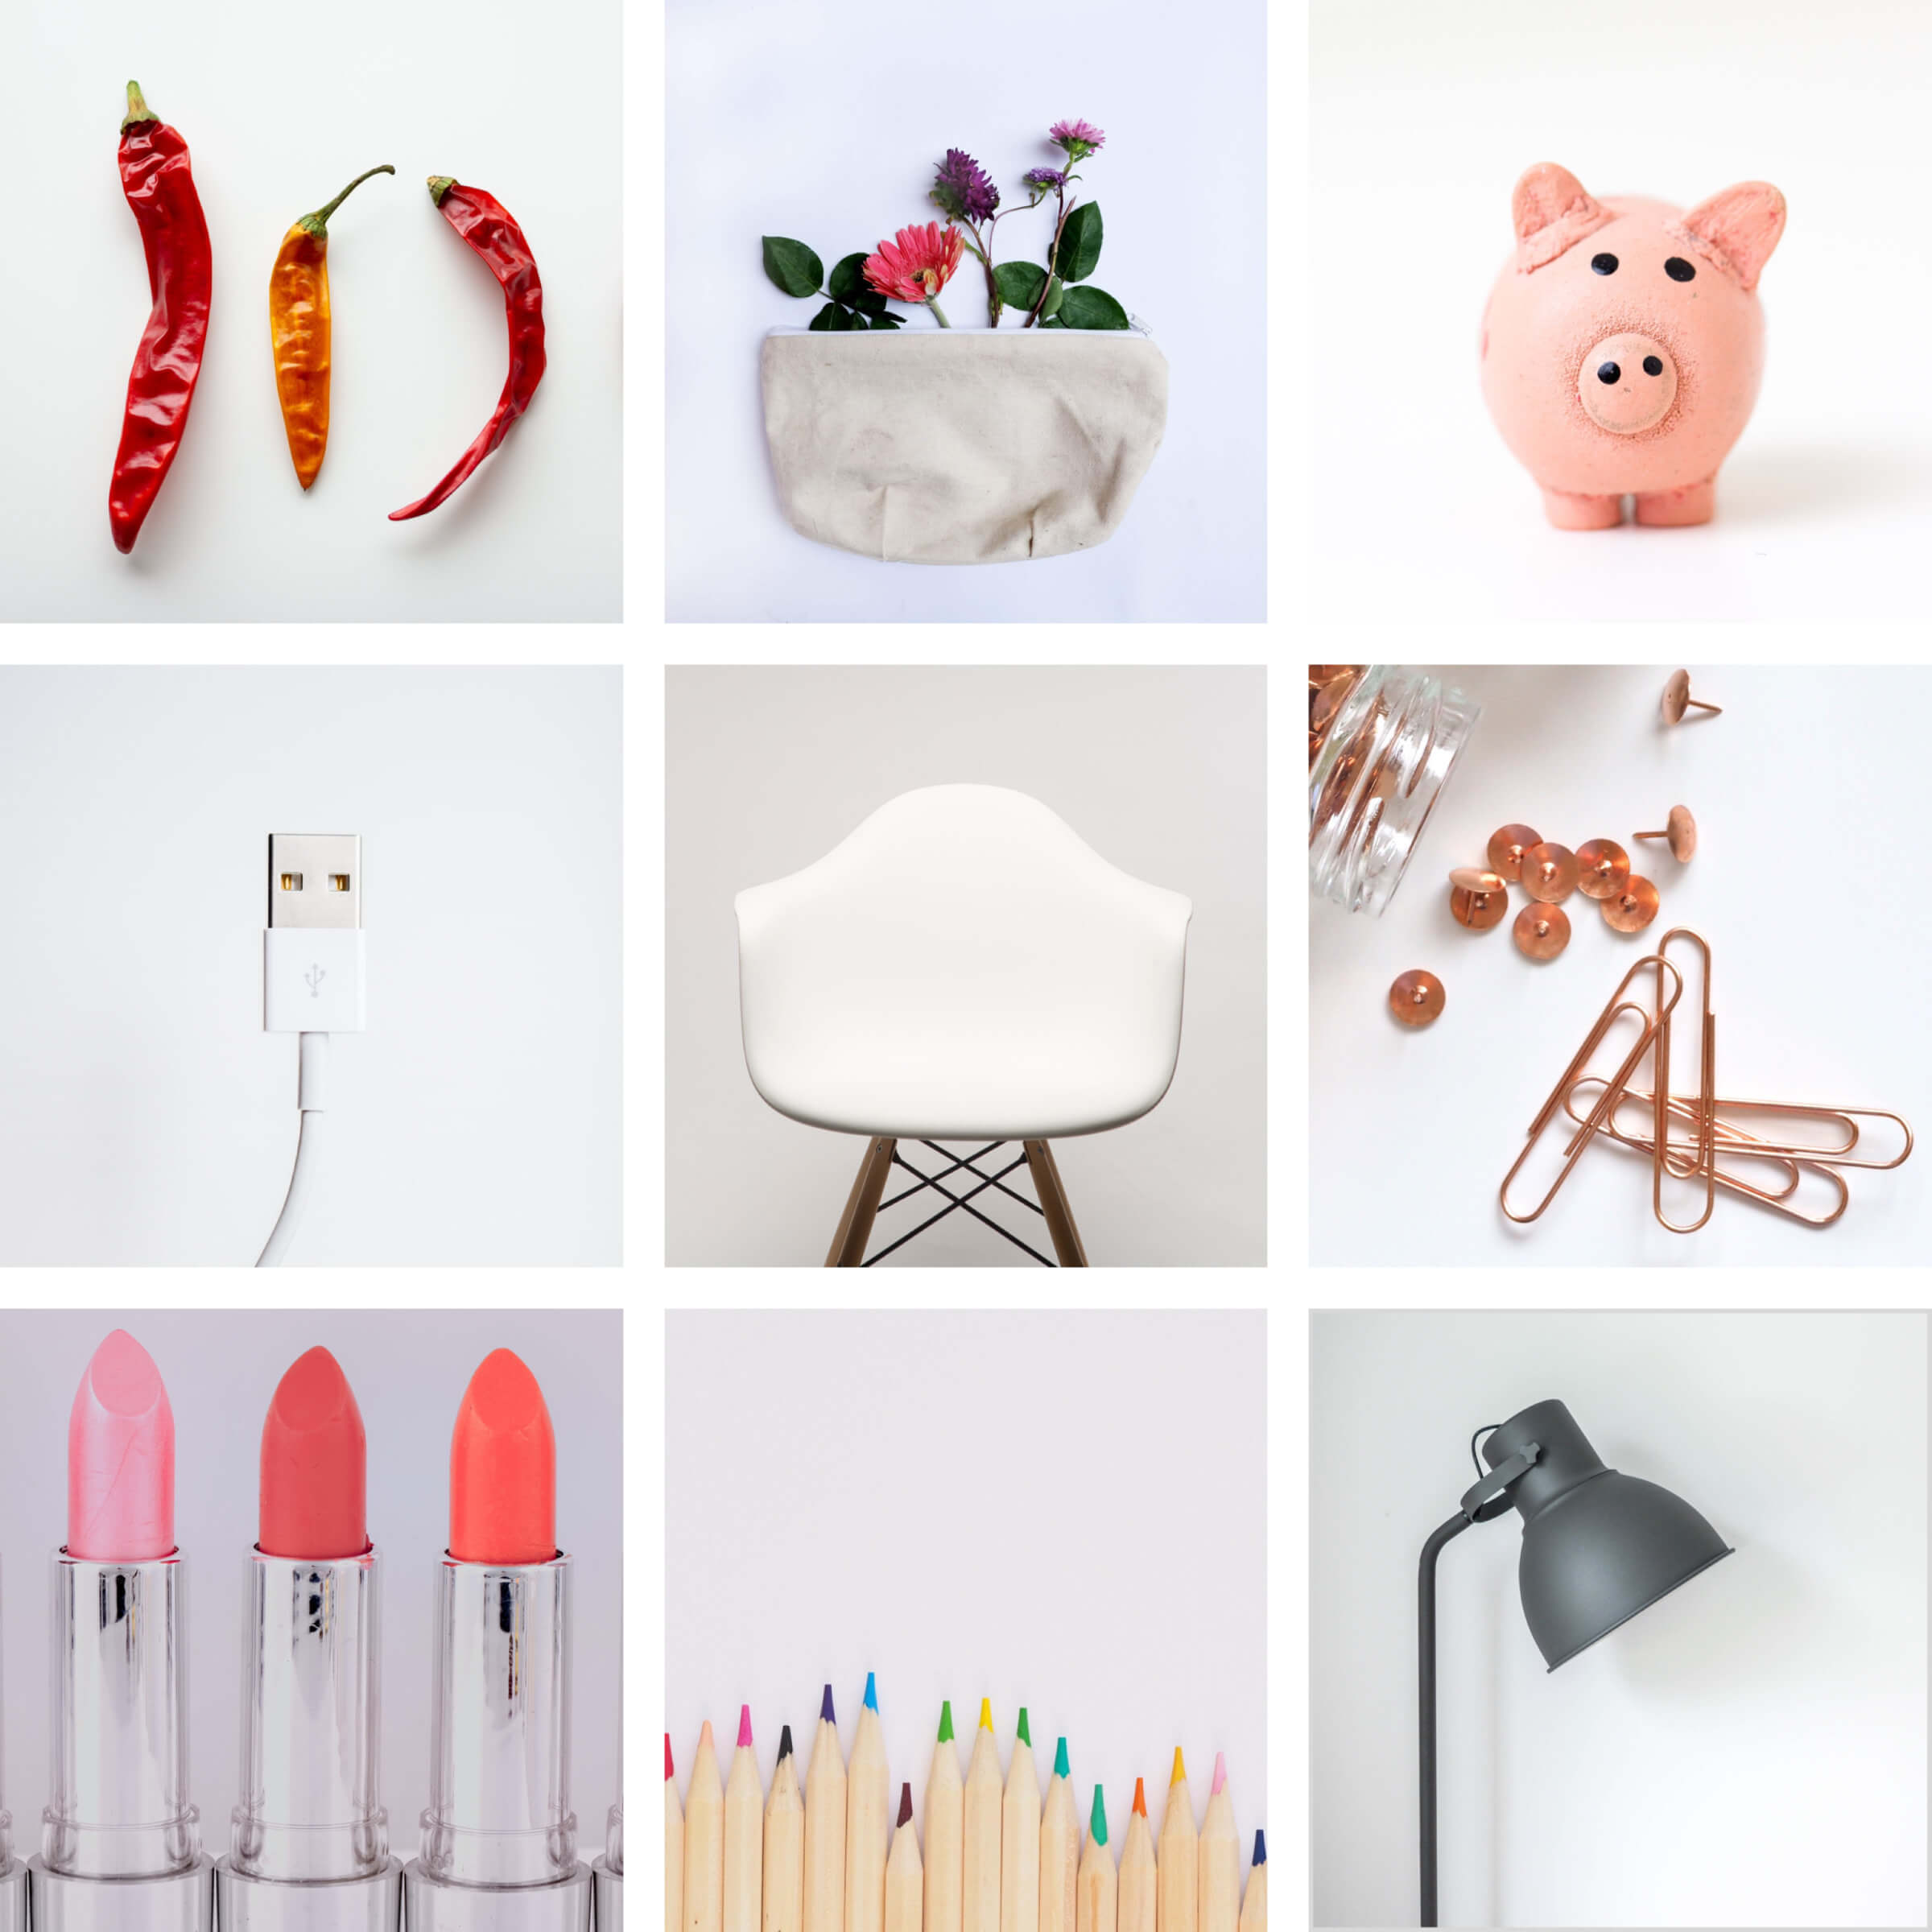 Lovely Collection Of Random Bits Of Komono. From Dried Chillis To Coloured Pencils. Images courtesy of Unsplash